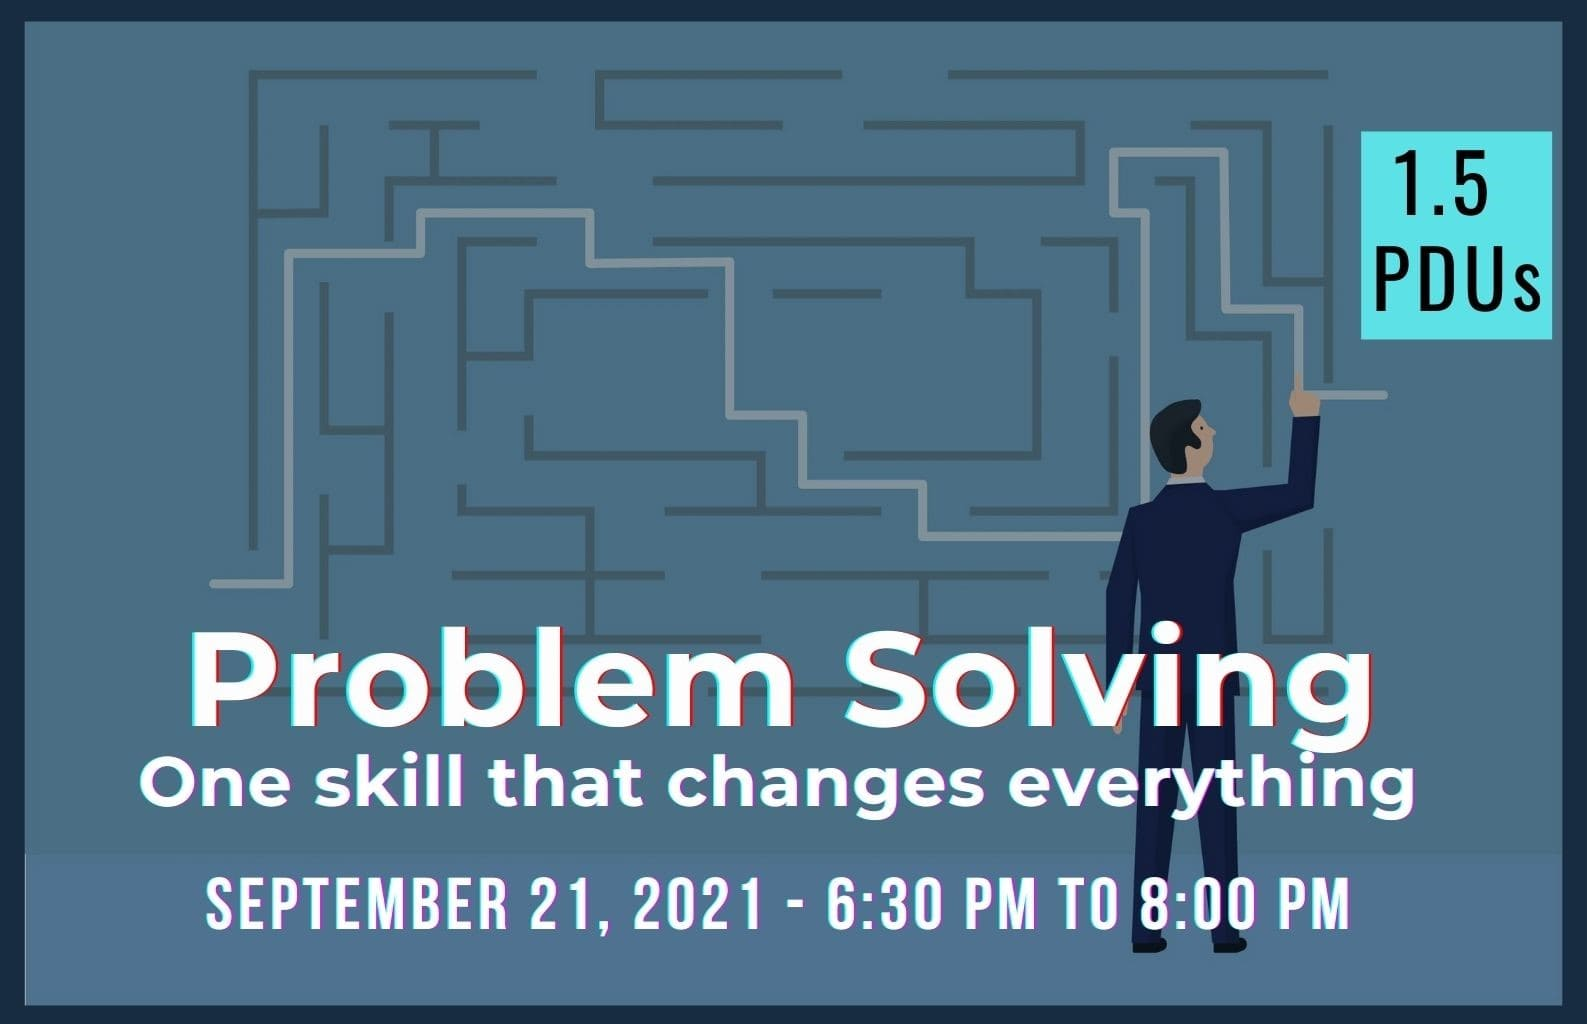 Project Management Webinar by PMCP promoted by pmwares - Problem Solving Skills